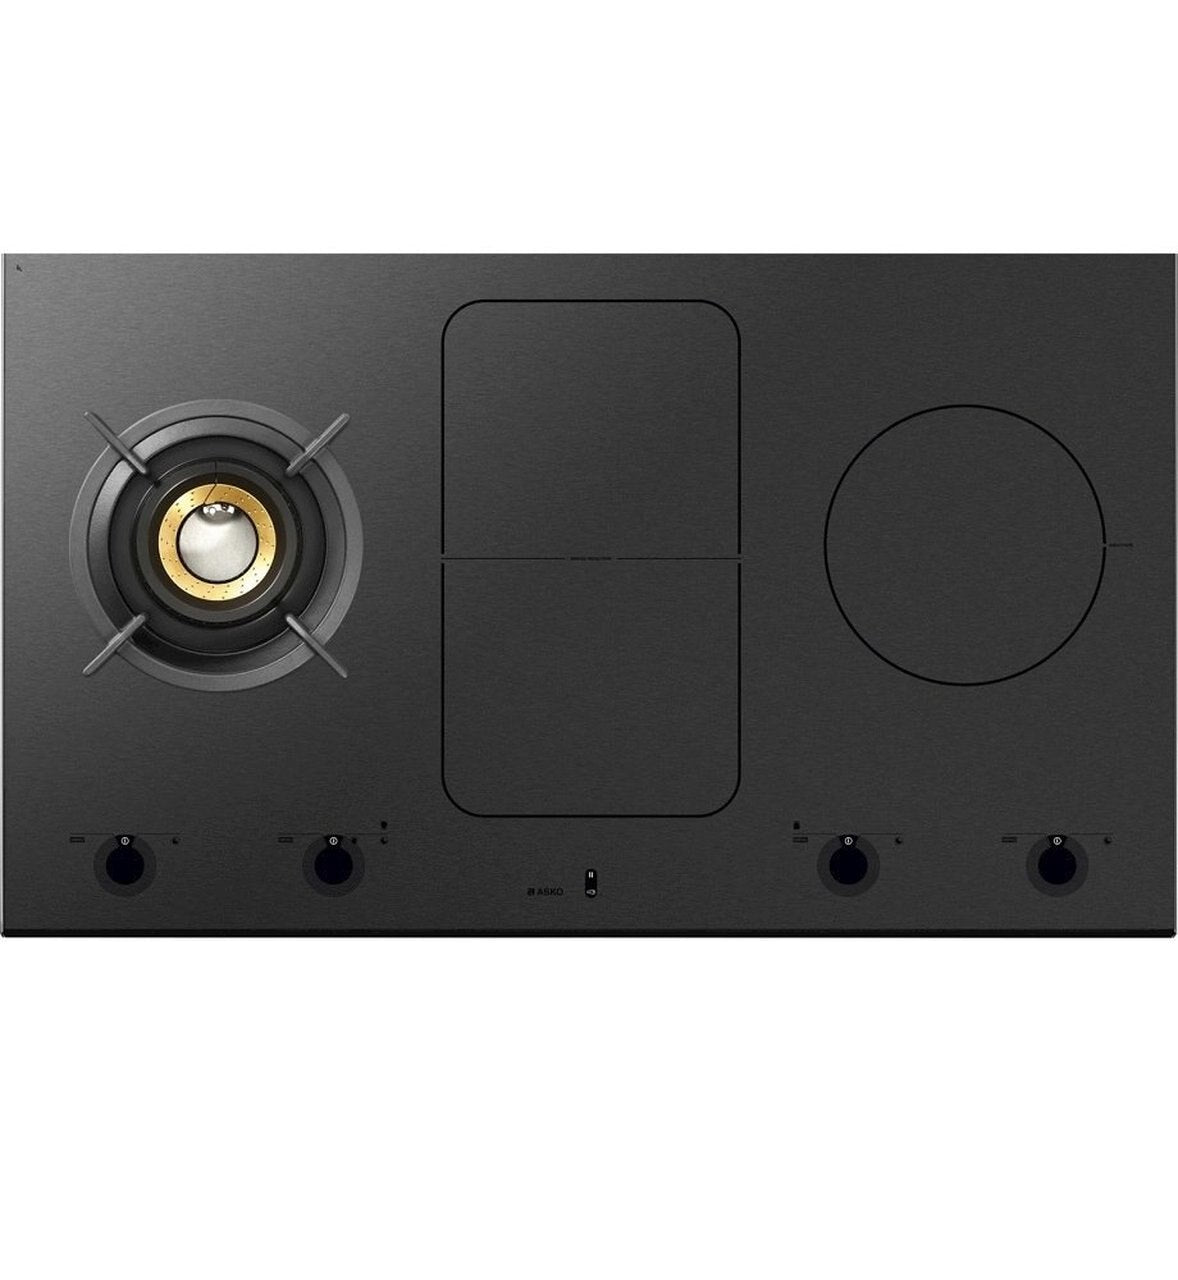 ASKO 90CM PRO SERIES DUO FUSION BURNER COOKTOP NATURAL GAS ONLY